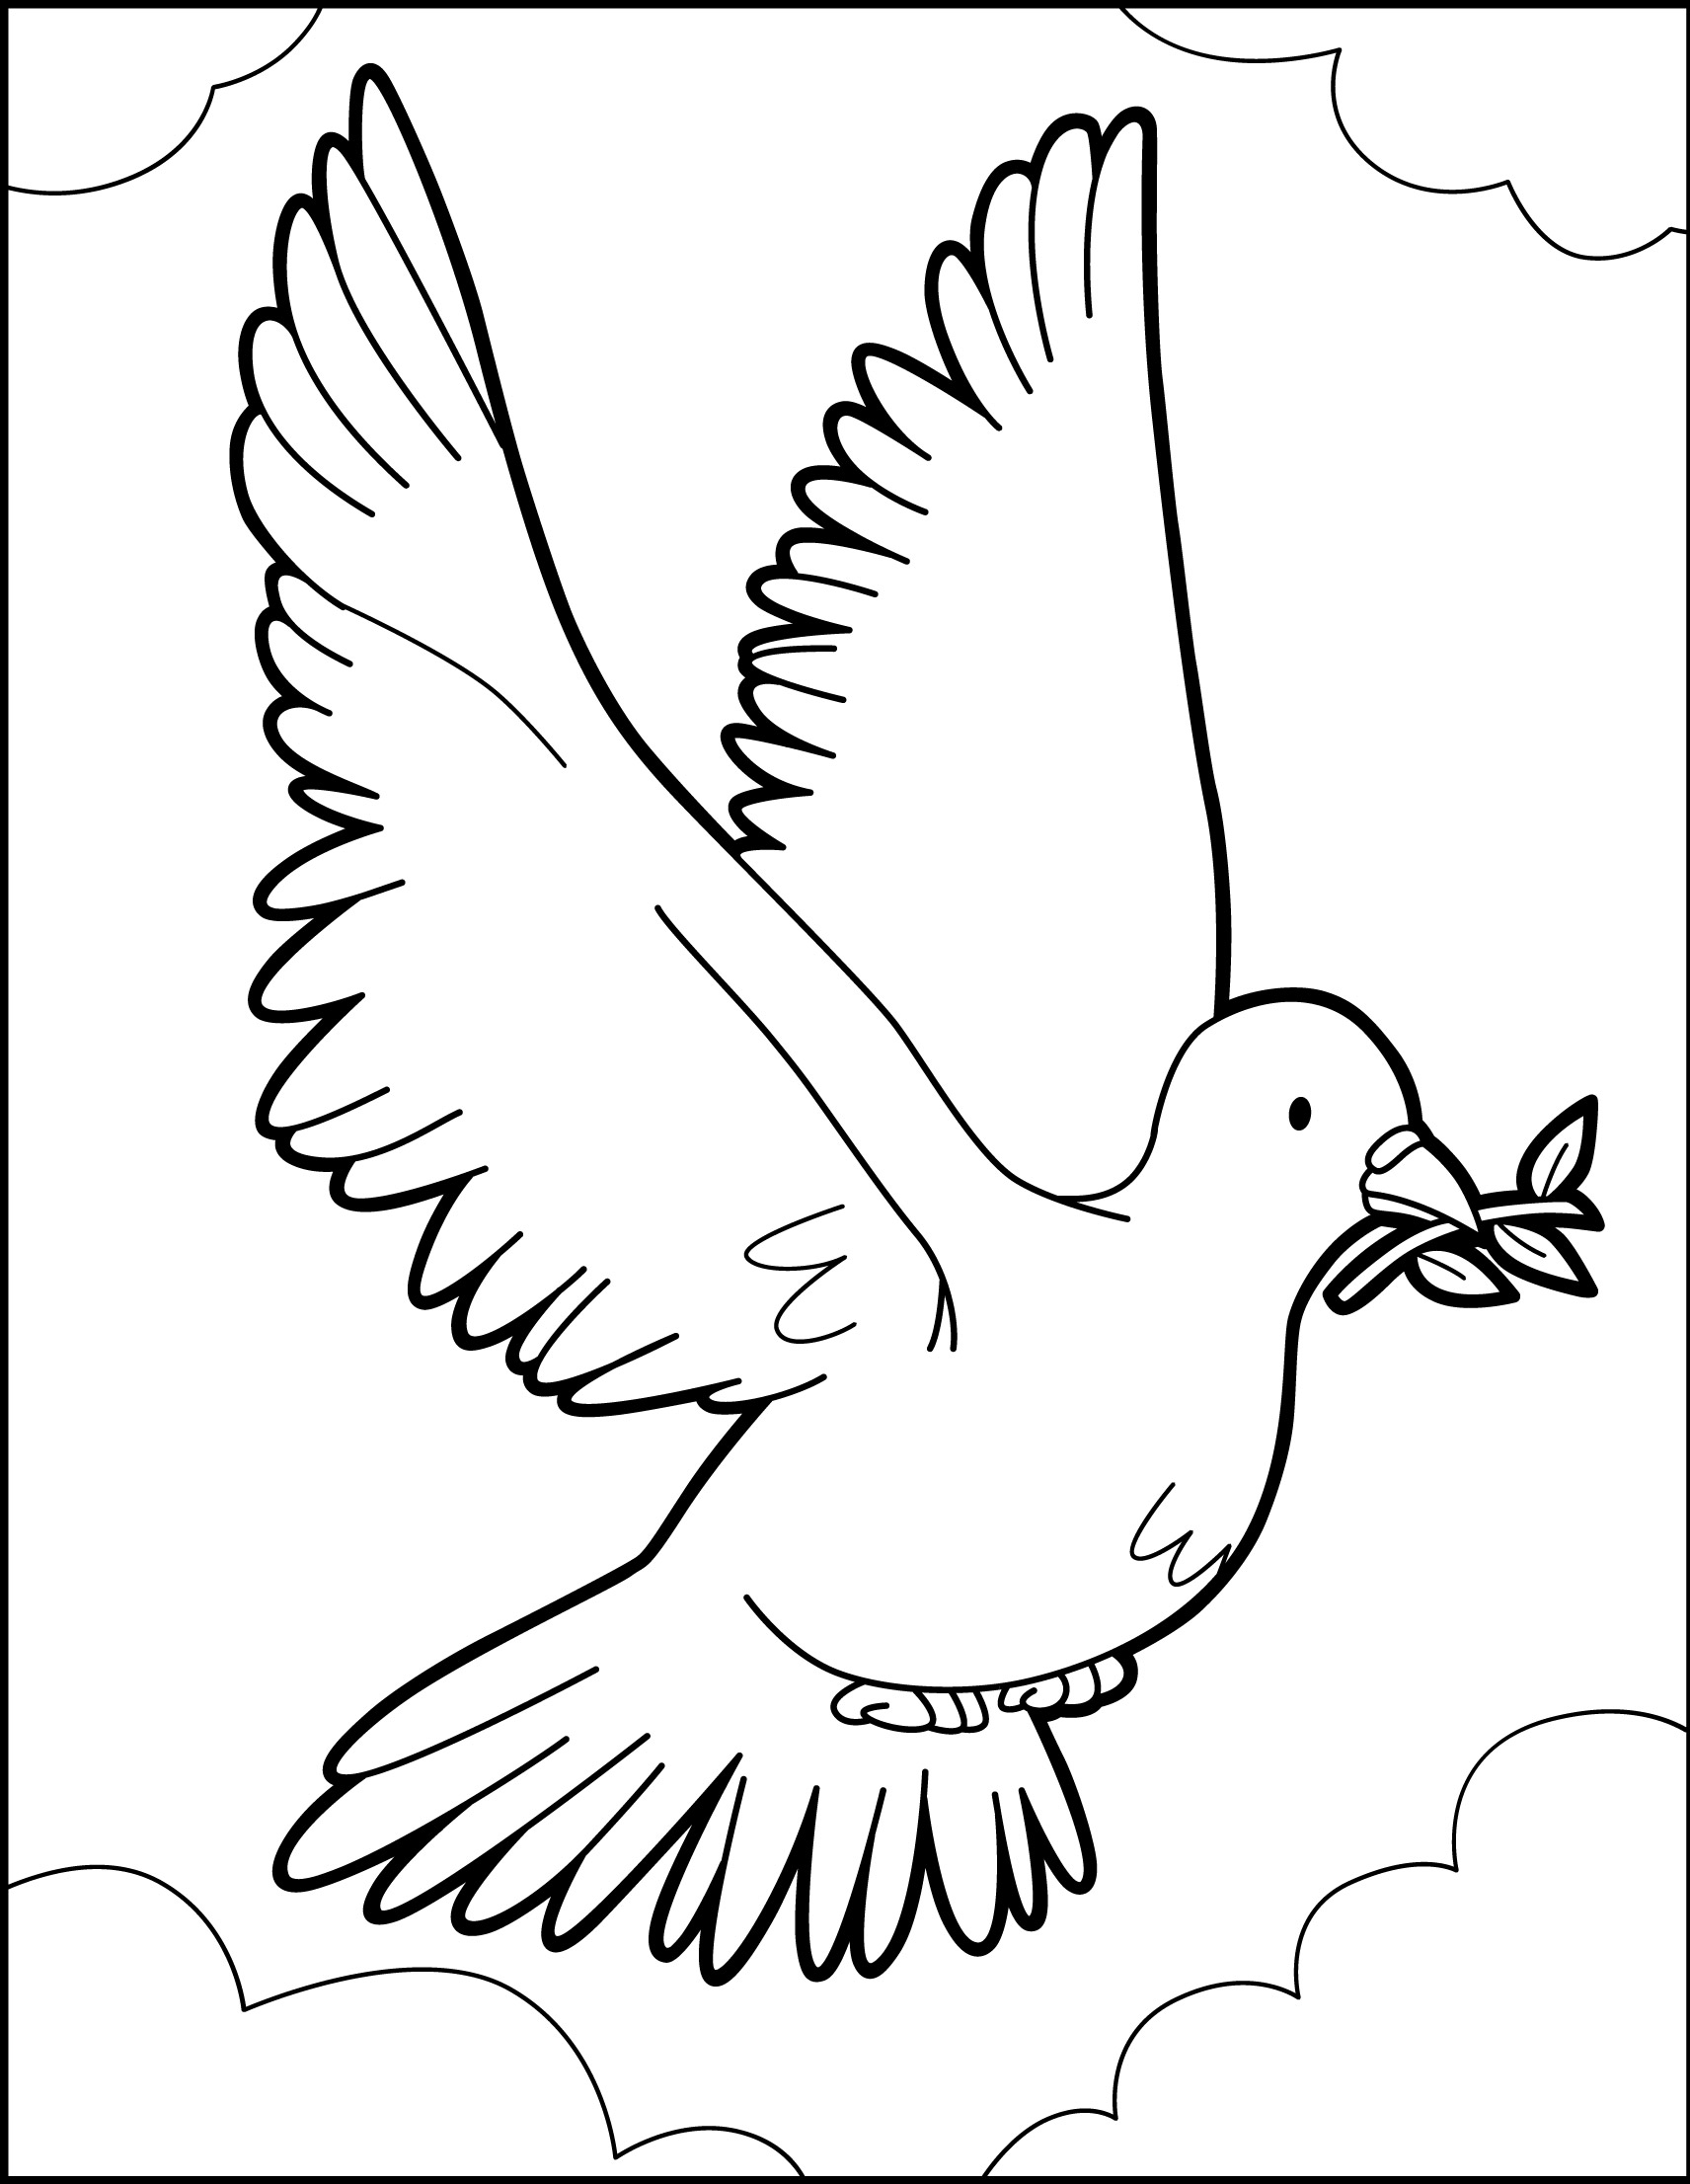 peace dove coloring page dove of peace coloring page art pinterest page coloring dove peace